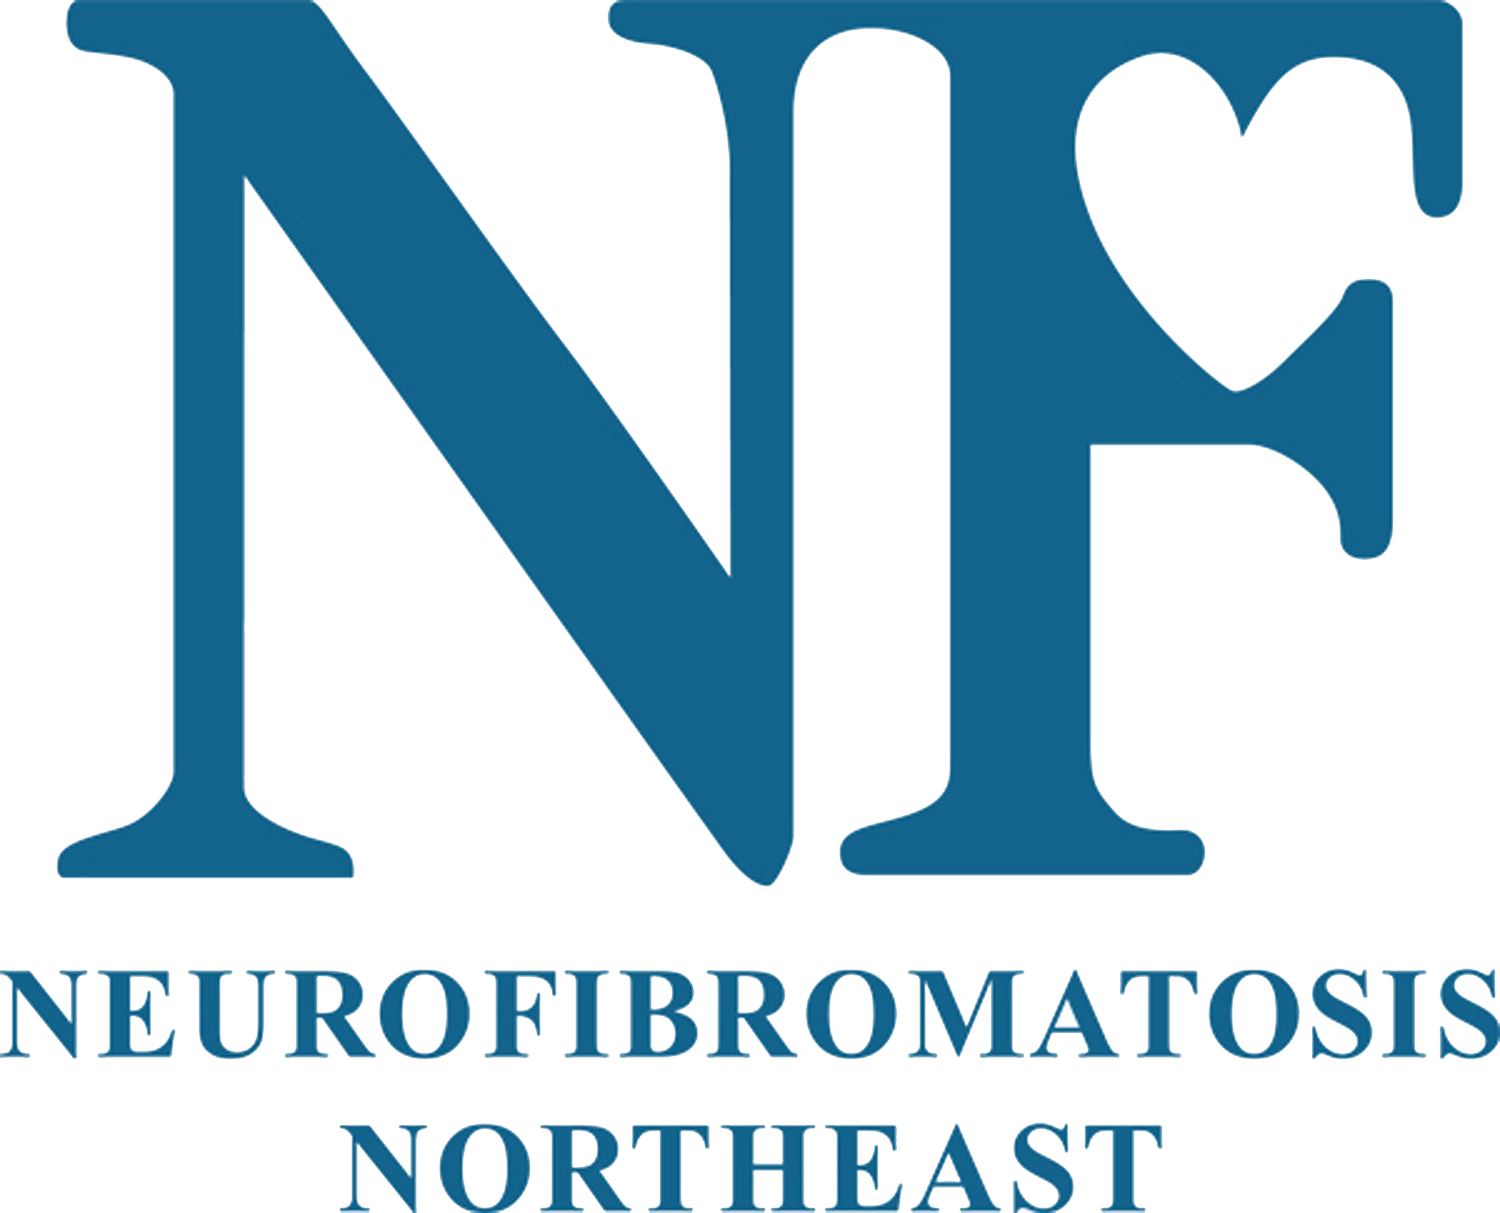 Neurofibromatosis Northeast